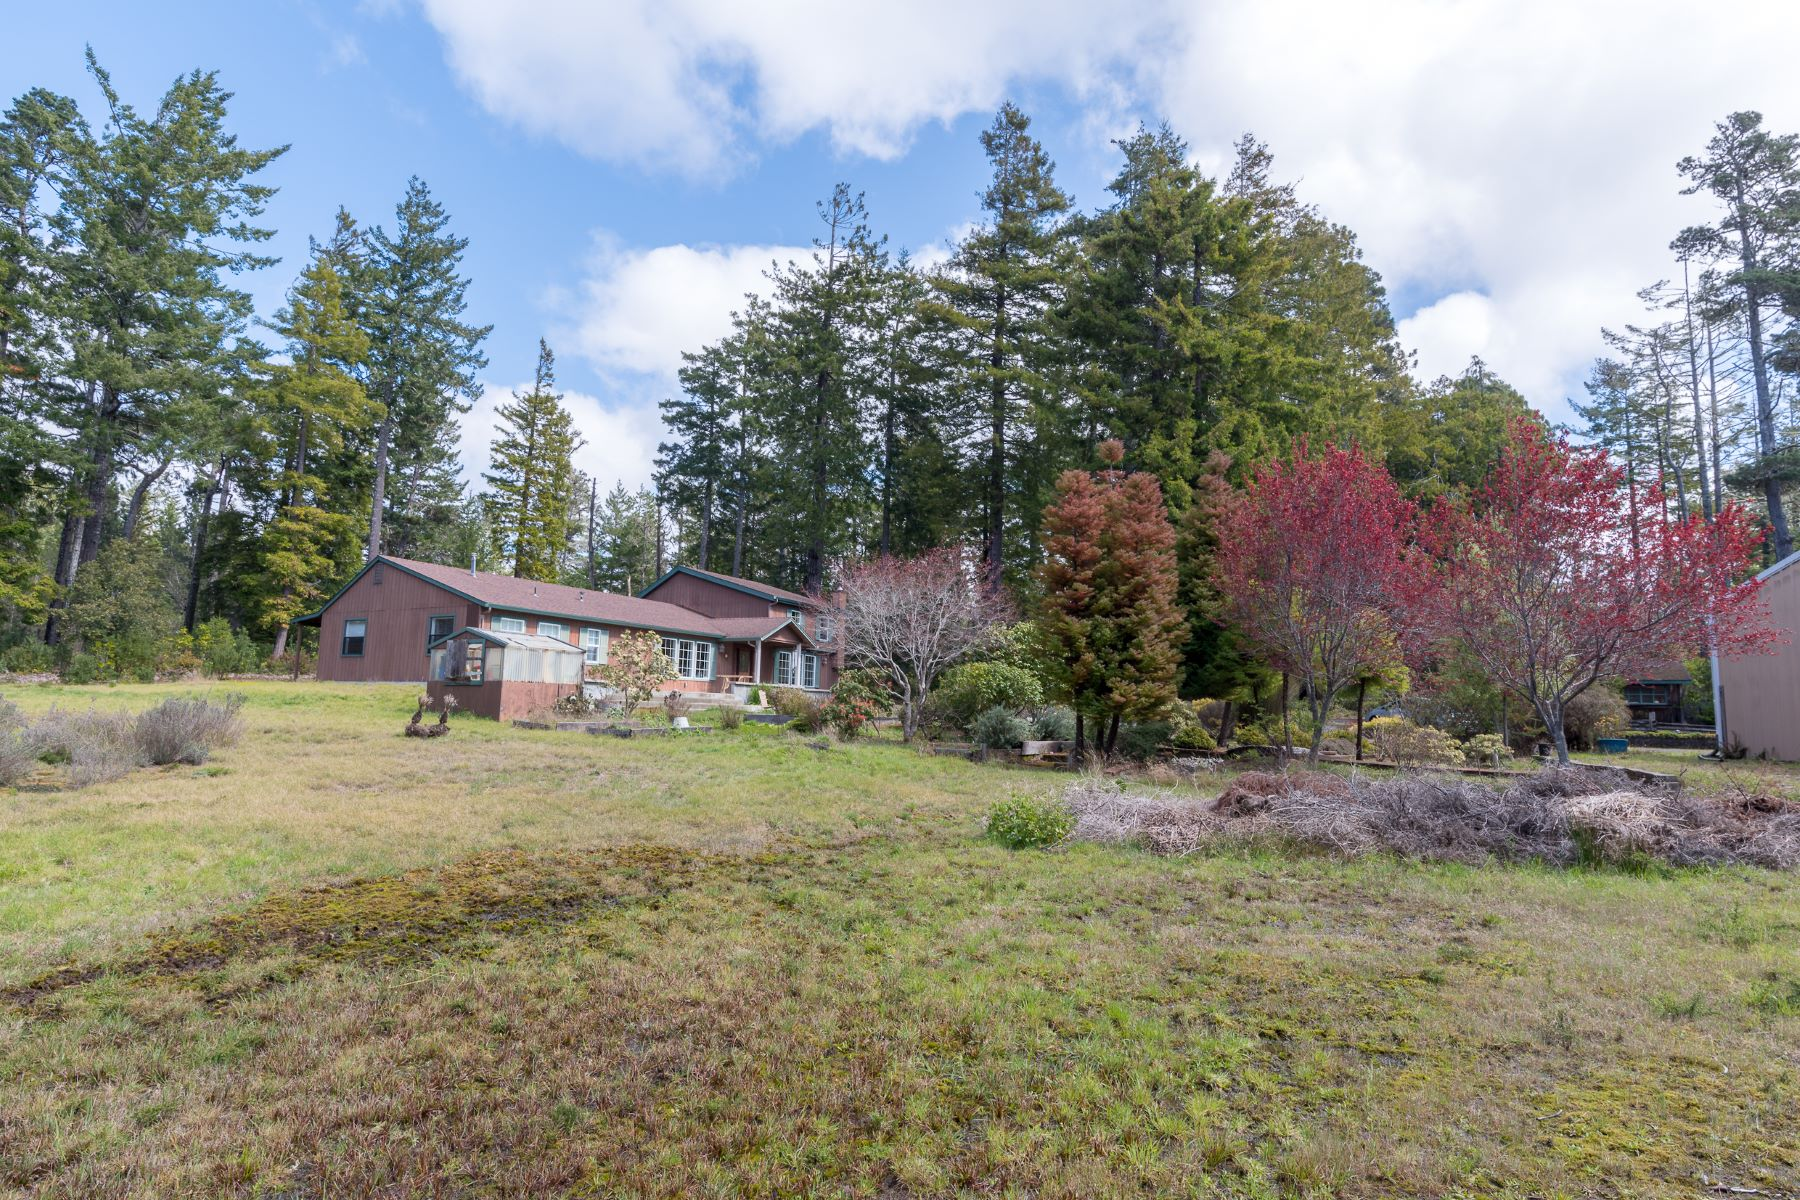 Single Family Home for Sale at Country Estate 9931 Warner Lane, Mendocino, California, 95460 United States